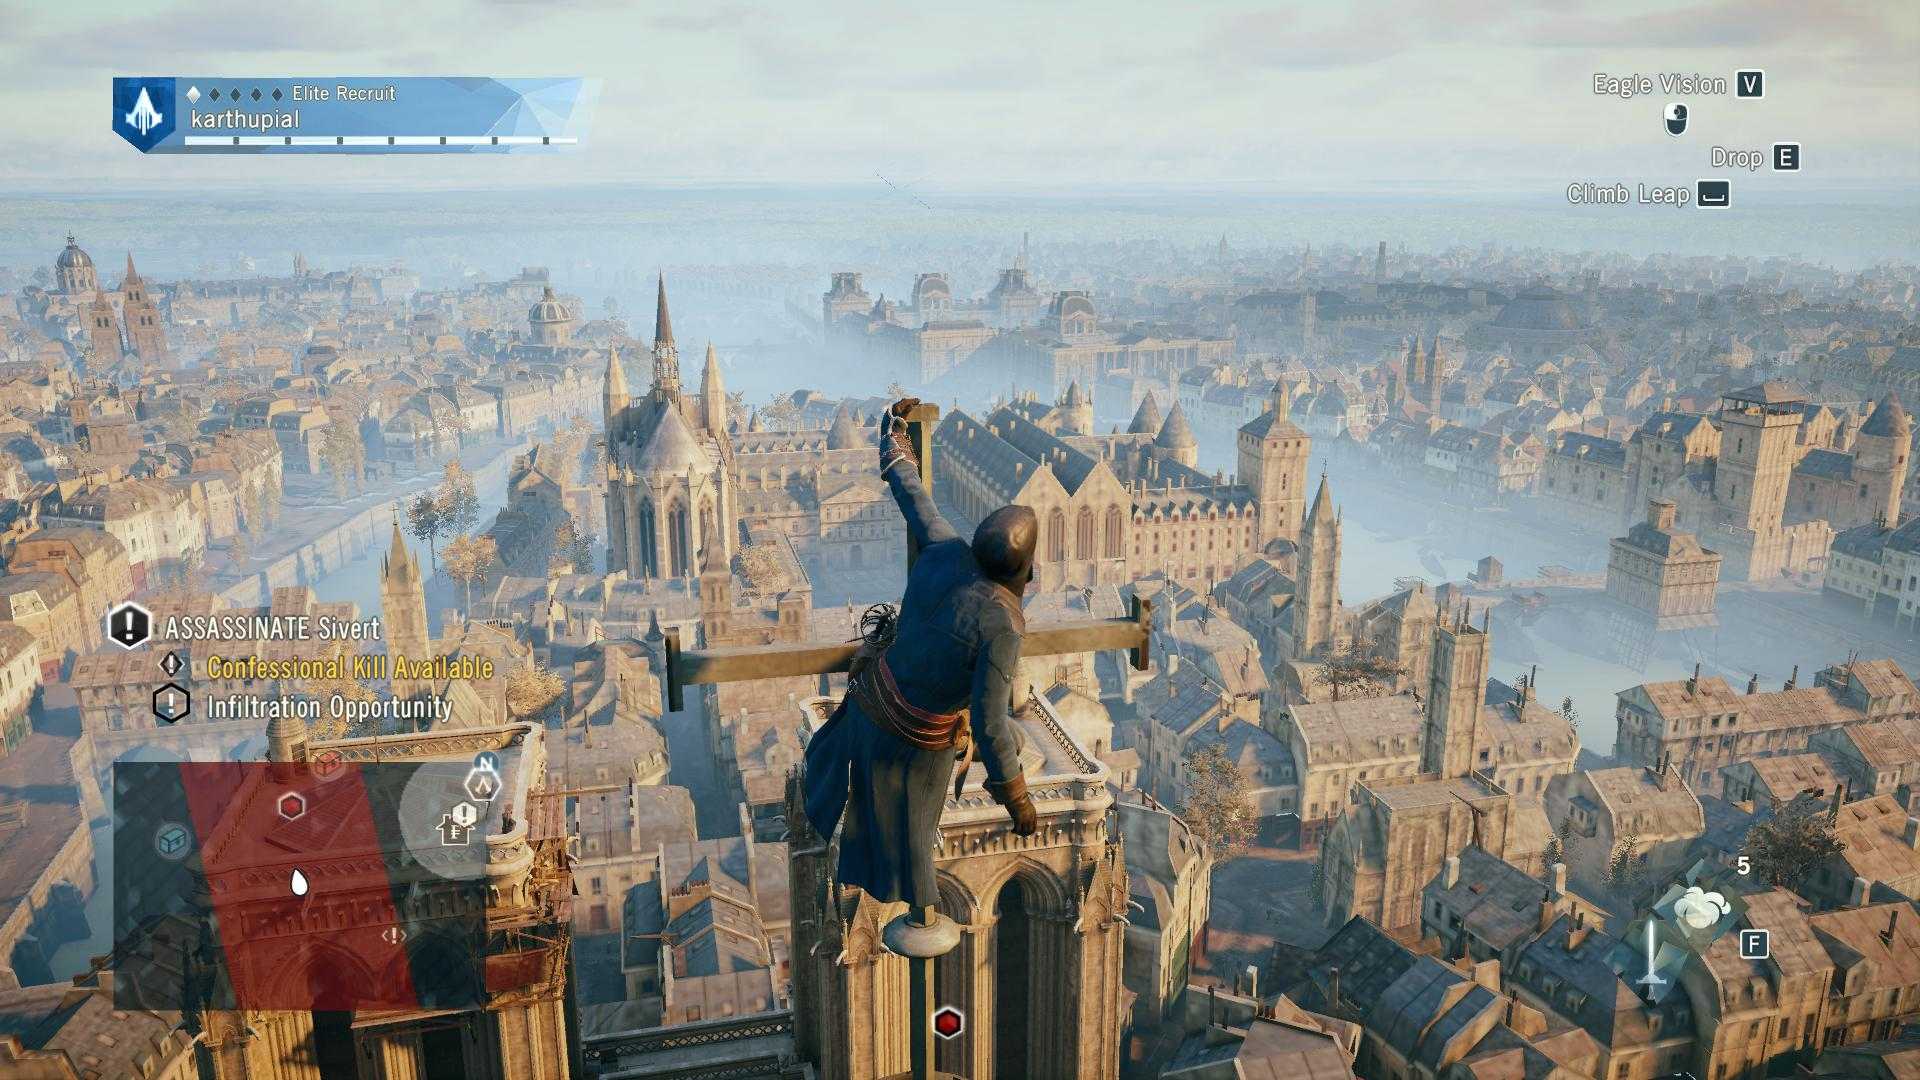 Unity Line Art Map : Assassin s creed unity pc review expert reviews